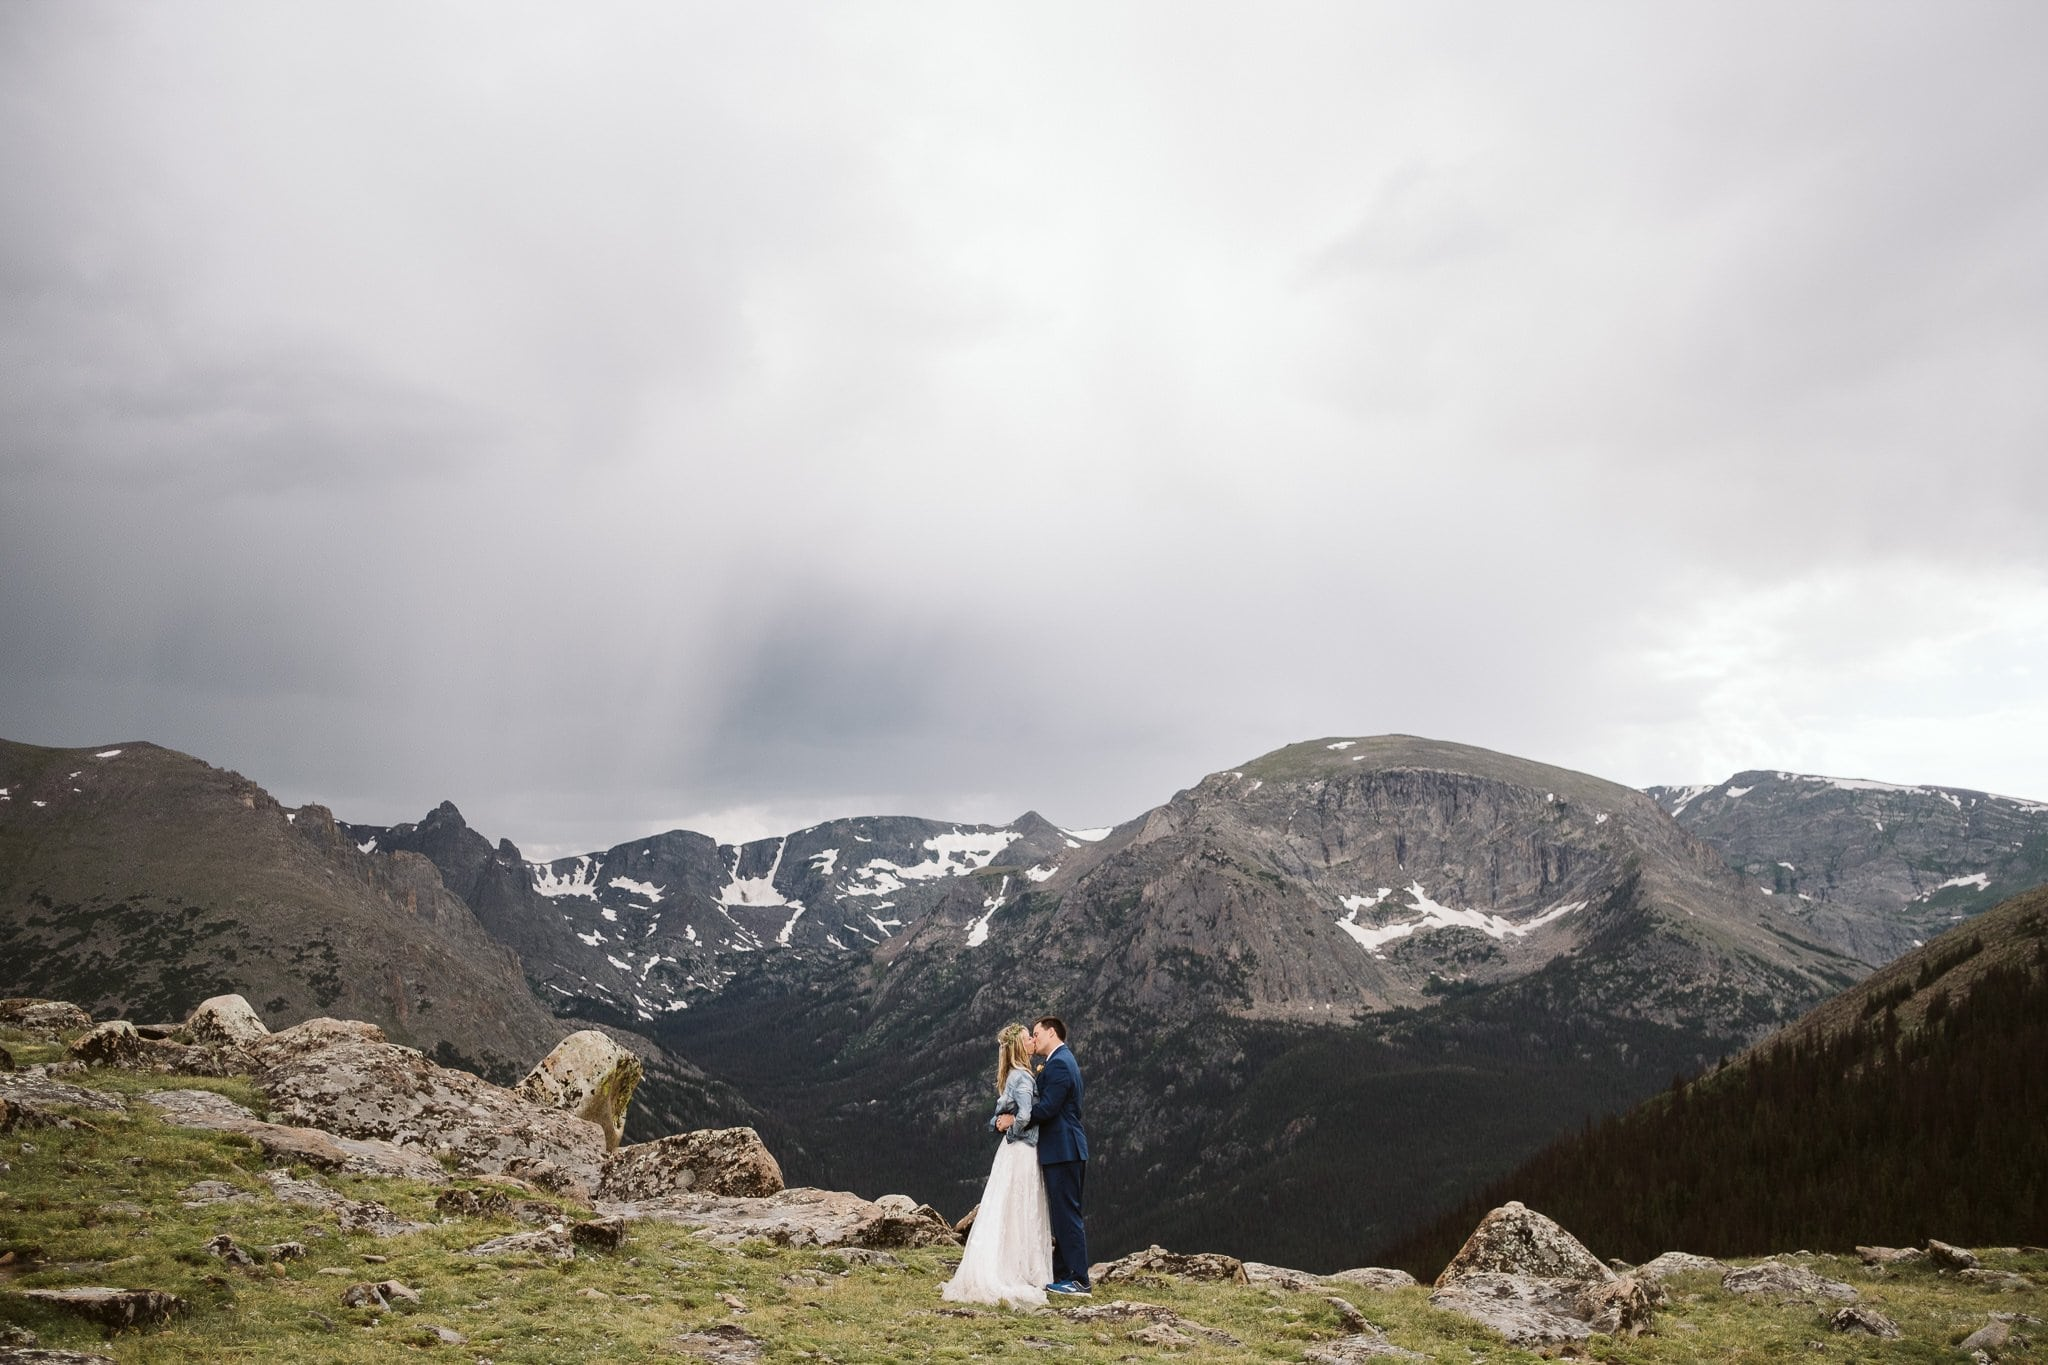 Bride and groom hiking elopement photos at Trail Ridge Road, Rocky Mountain National Park wedding, bride in denim jacket and wedding dress, Colorado elopement photographer